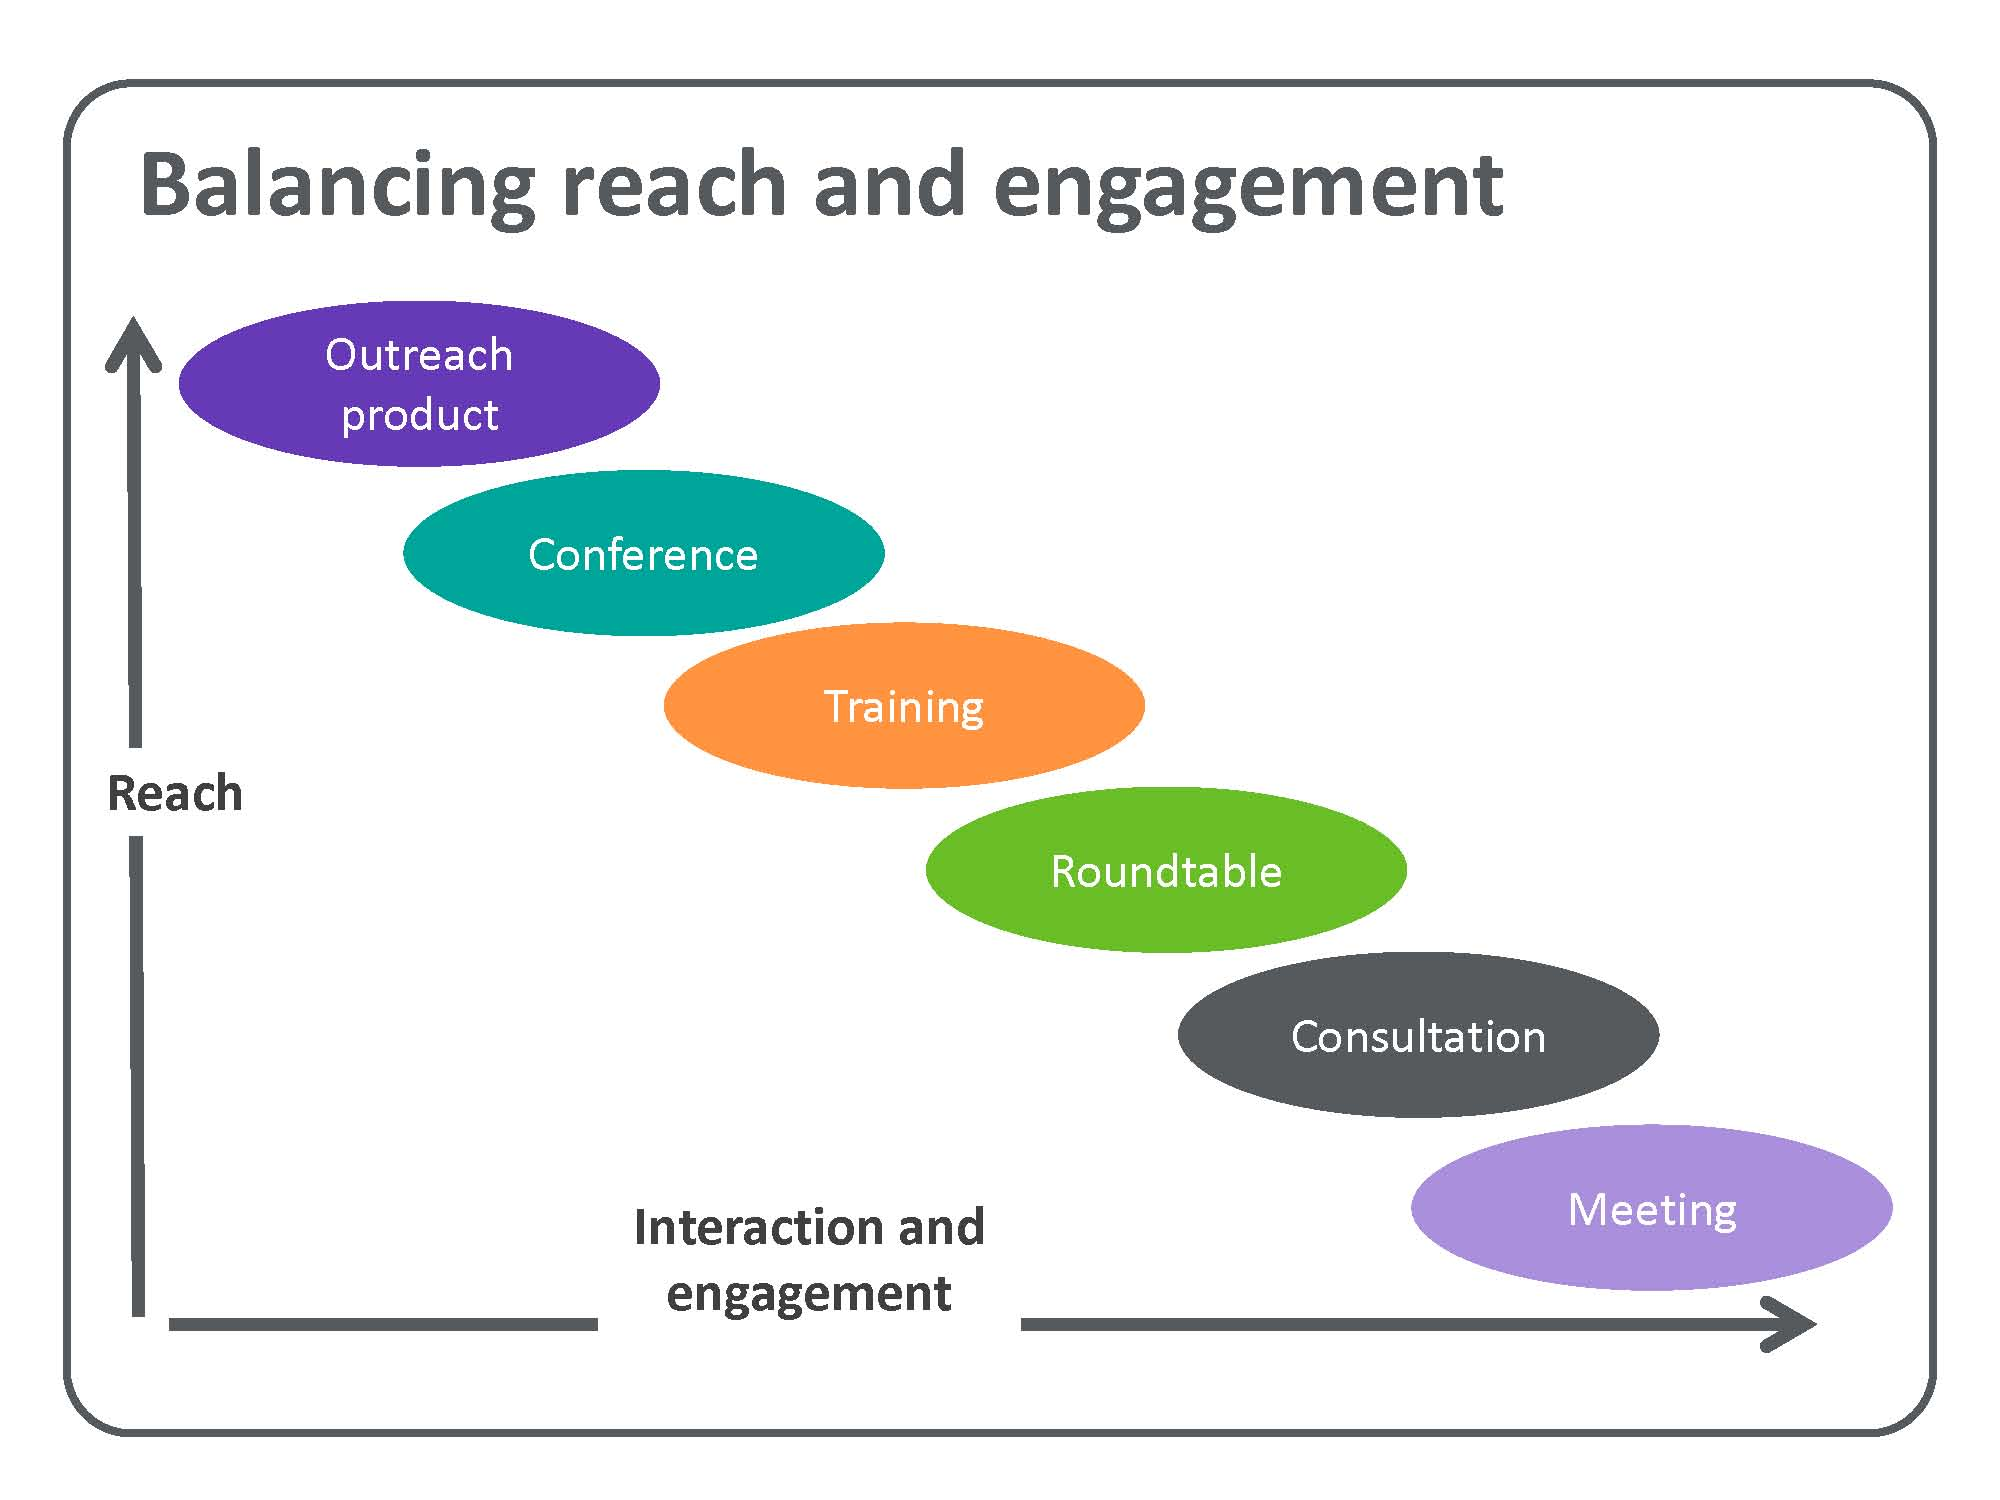 Balancing reach and engagement